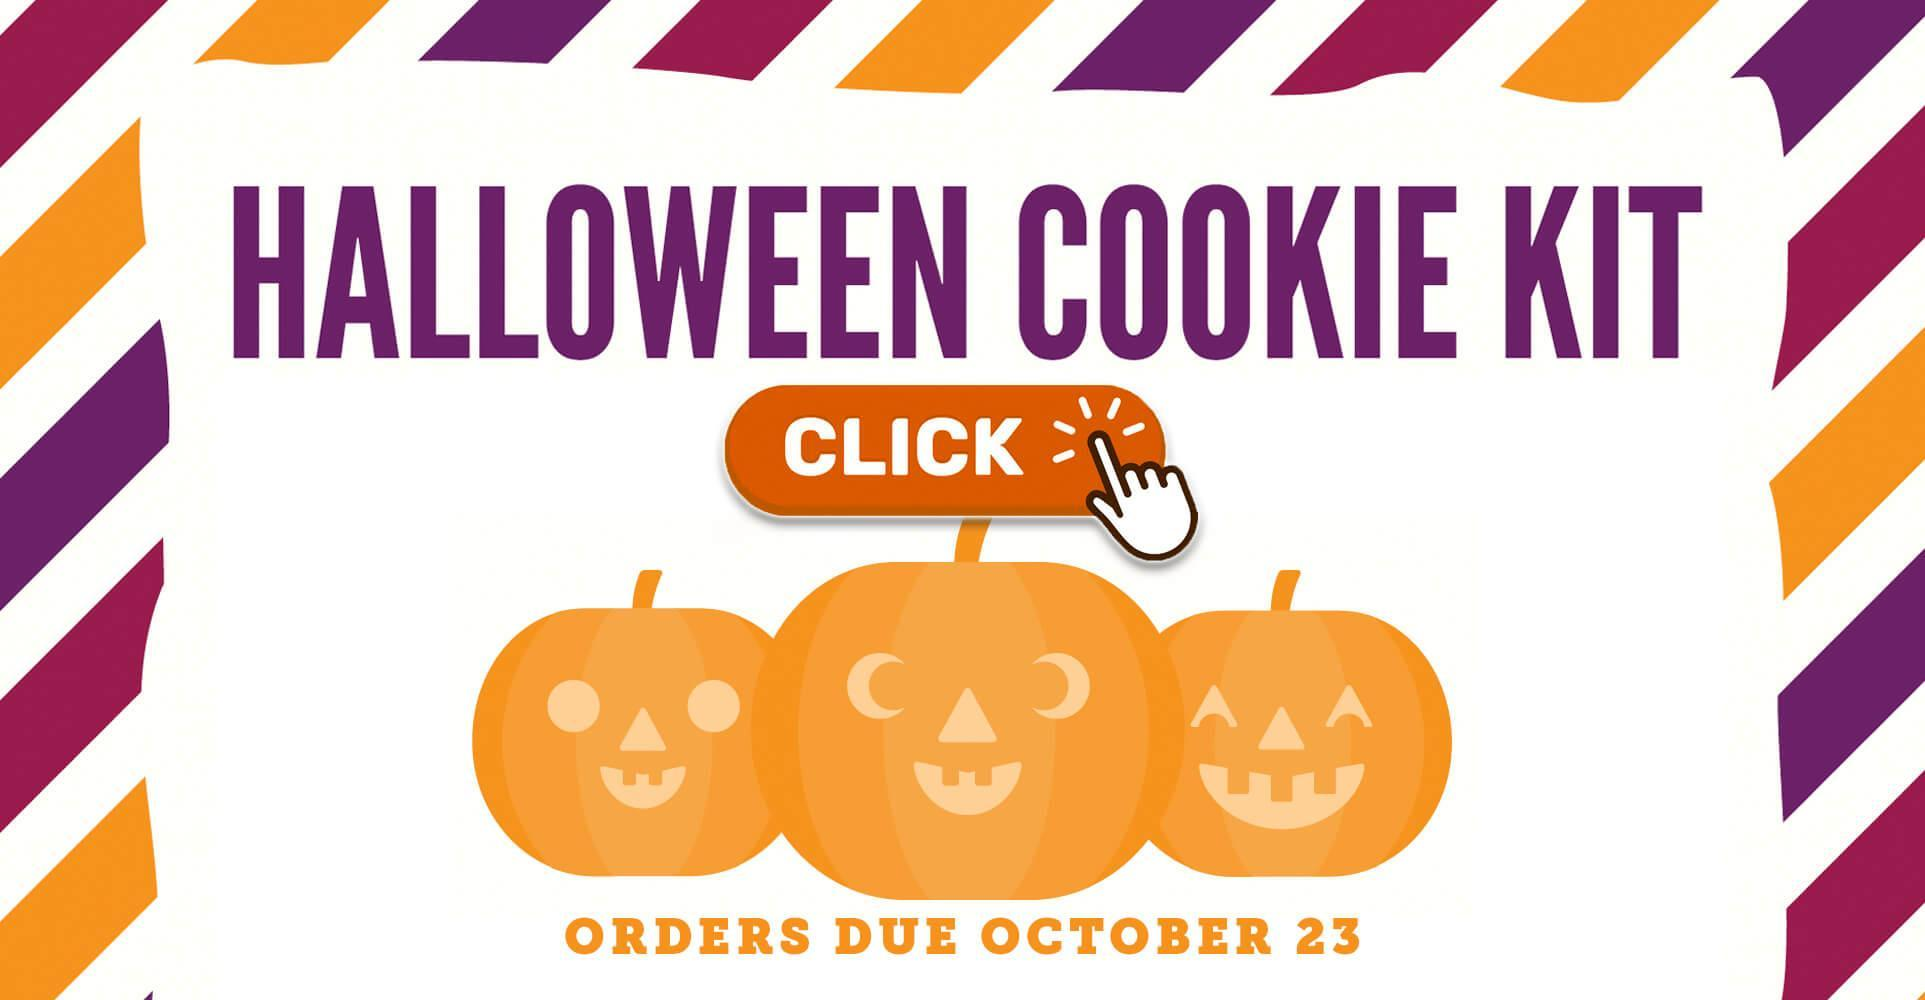 Halloween Cookie Kit Information & Order Forms